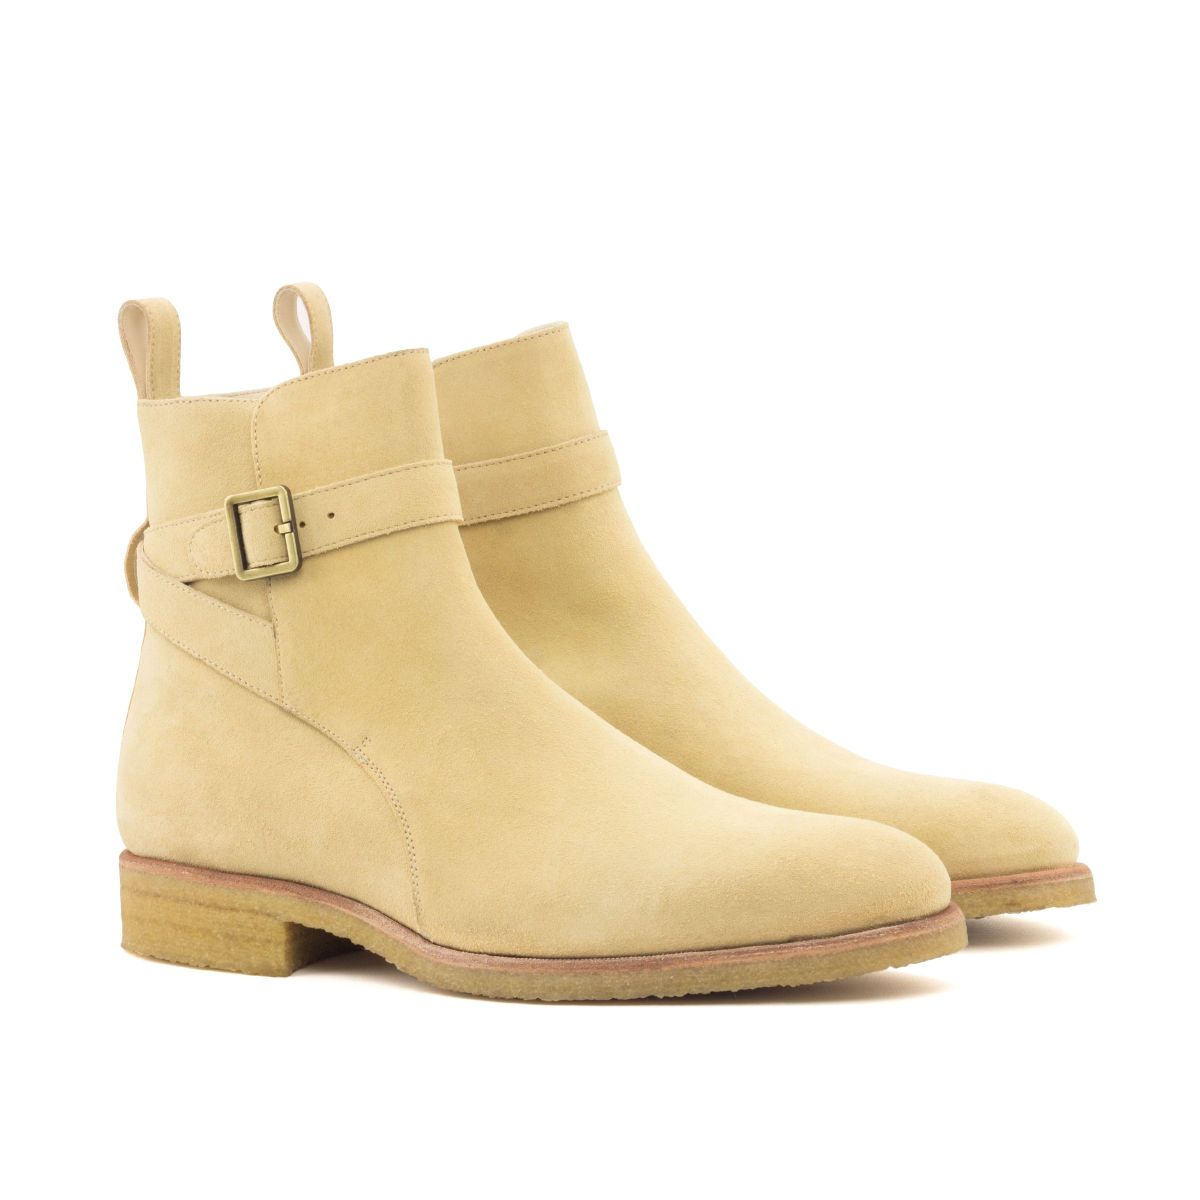 L'Eiffel suede Jodhpur buckle boot with crepe sole